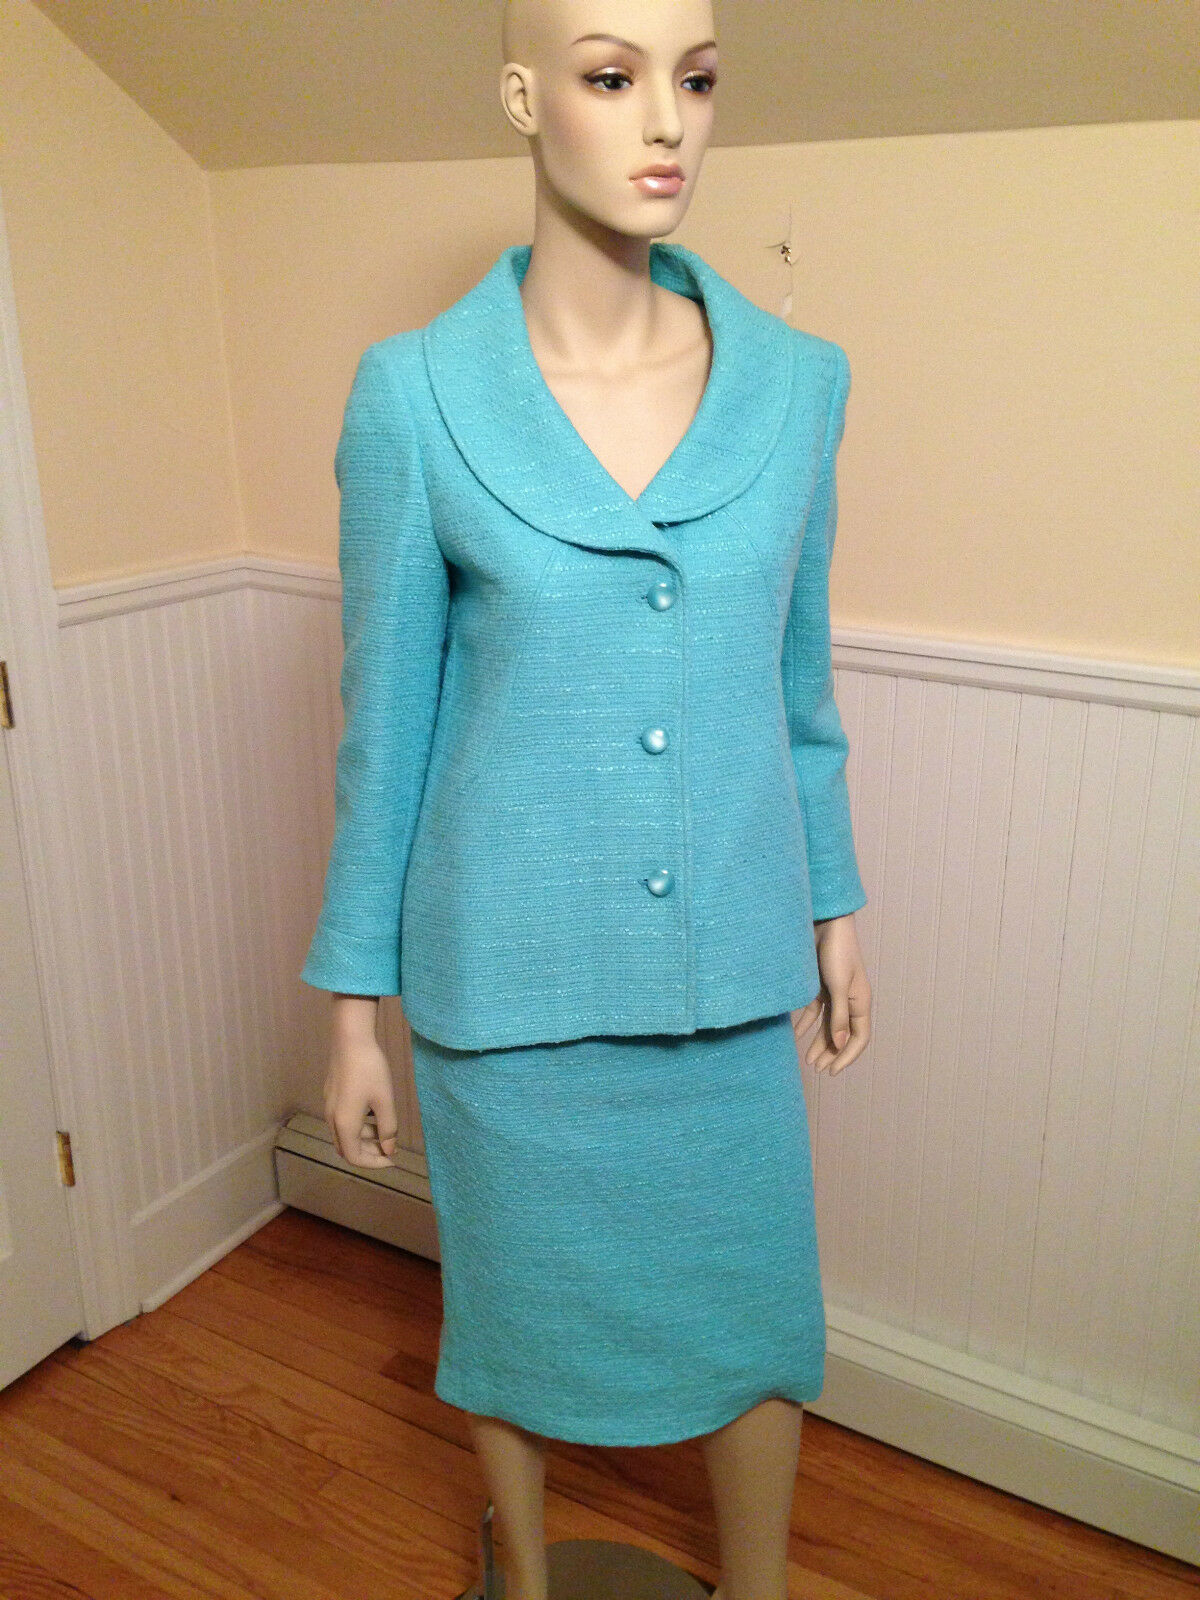 Vintage CHRISTIAN DIOR Boutique Turquoise bluee Cotton Classic Skirt Suit Medium